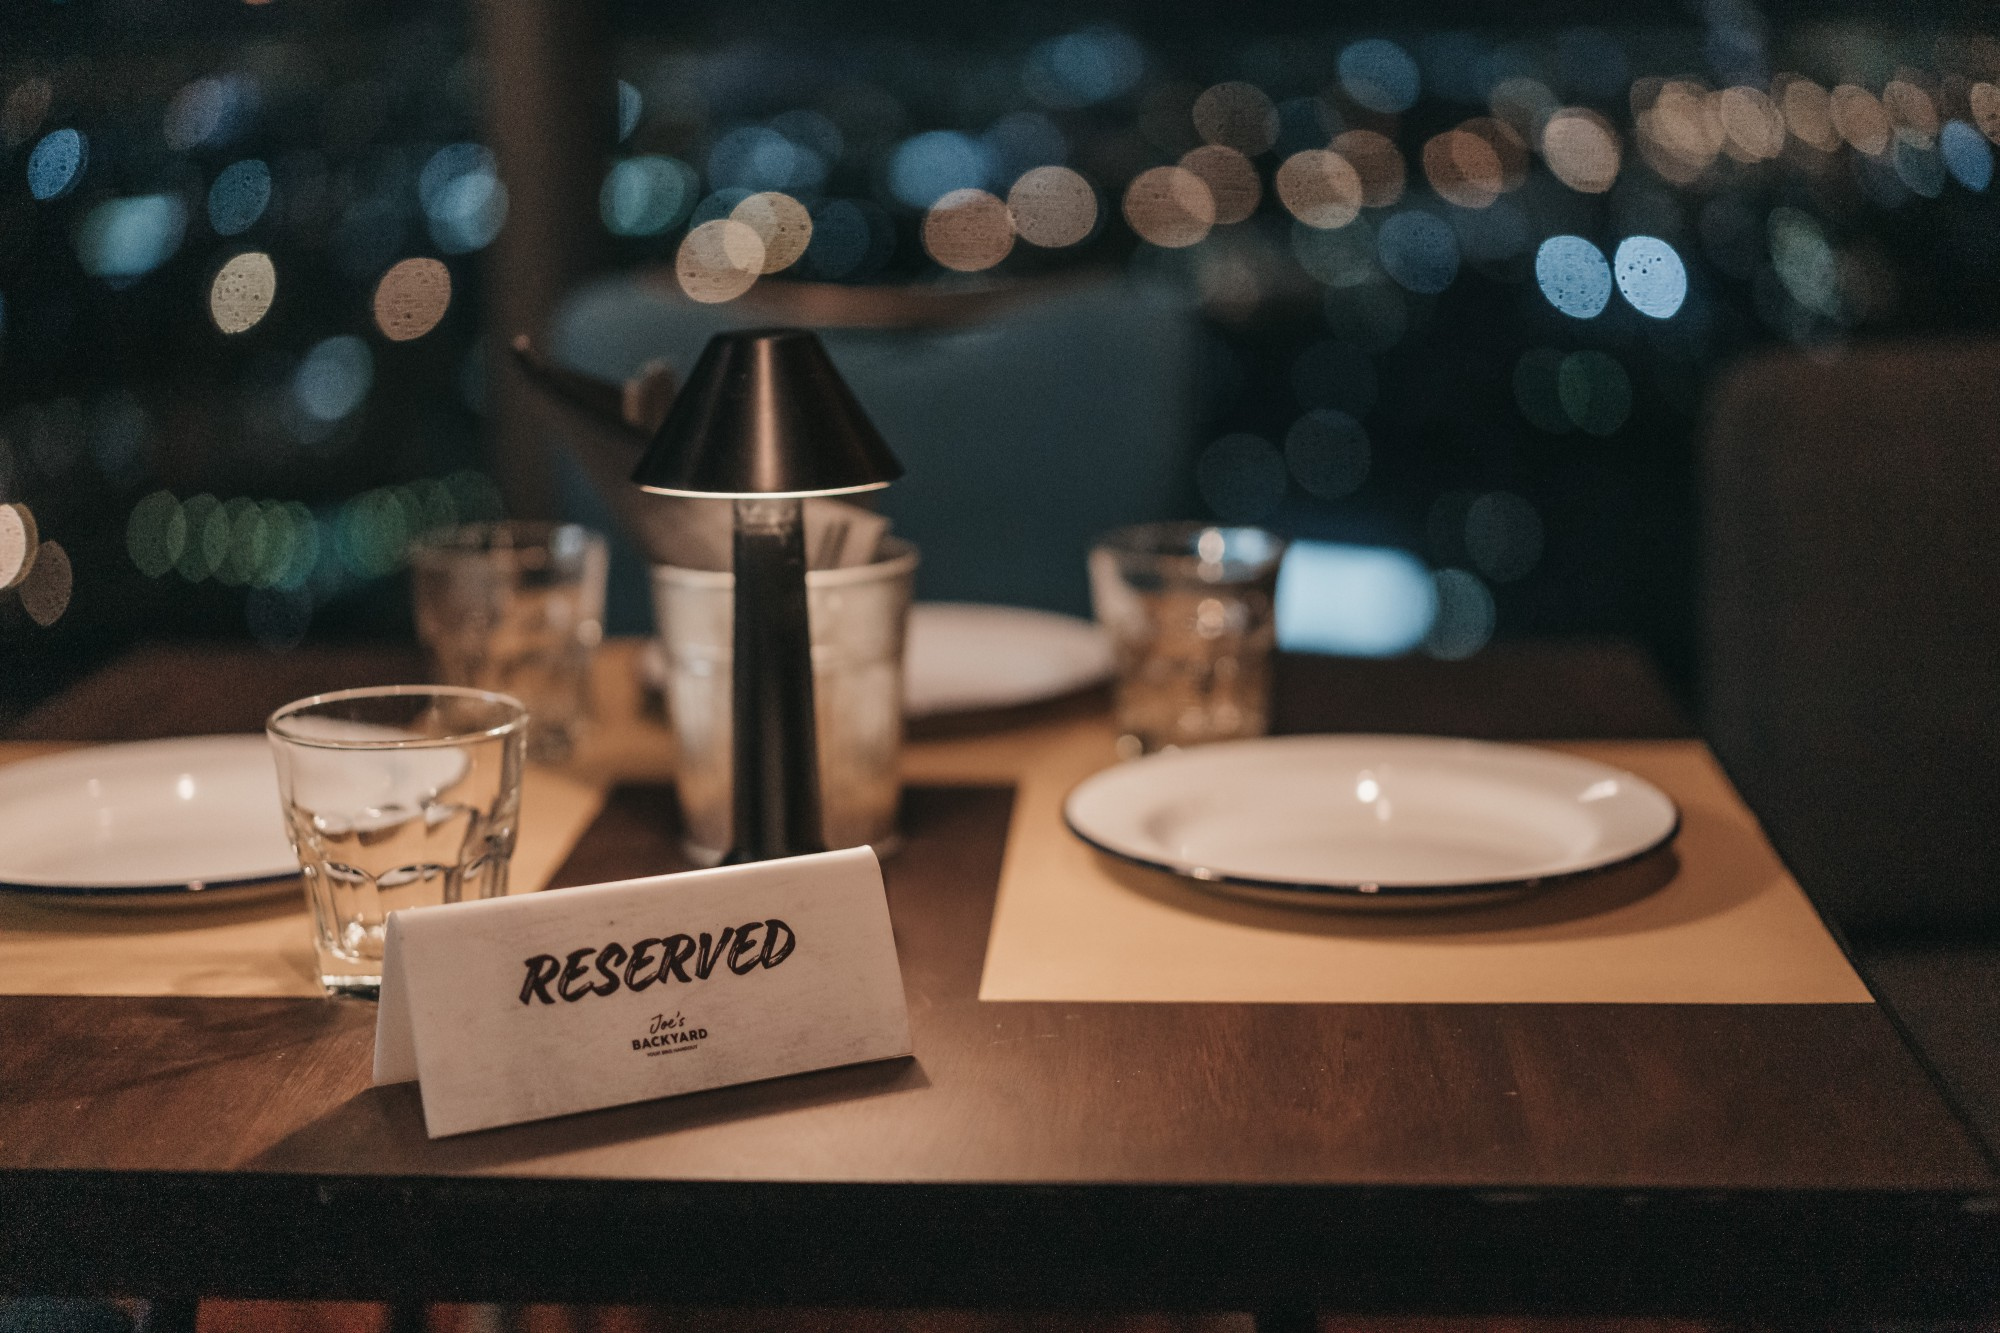 Fine dining table setting with a reserved sign sitting on it.